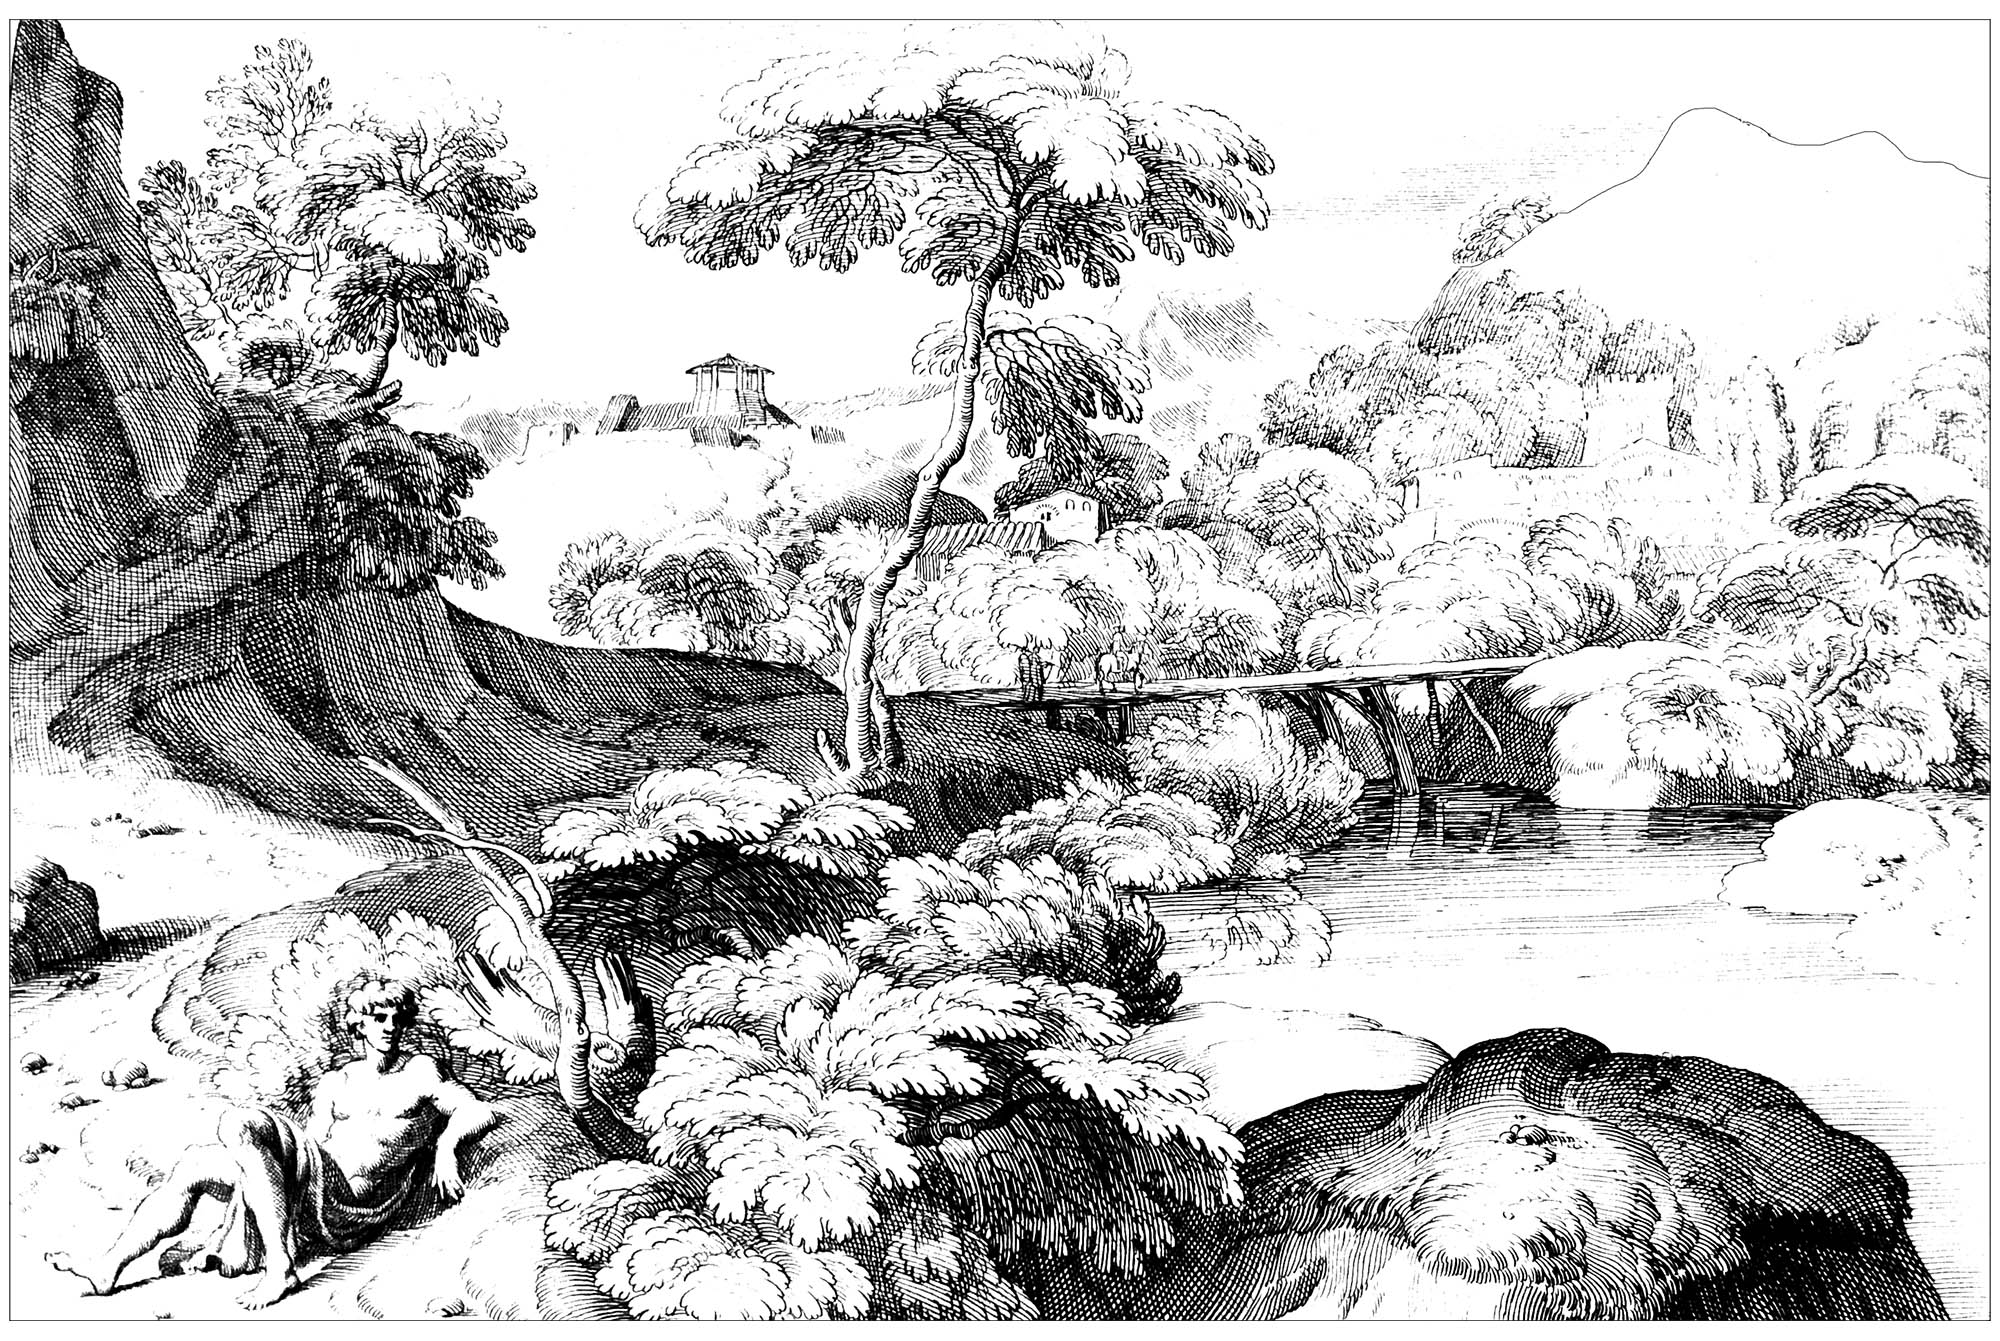 Landscape Drawing By Jacques Rousseau 1630 1693